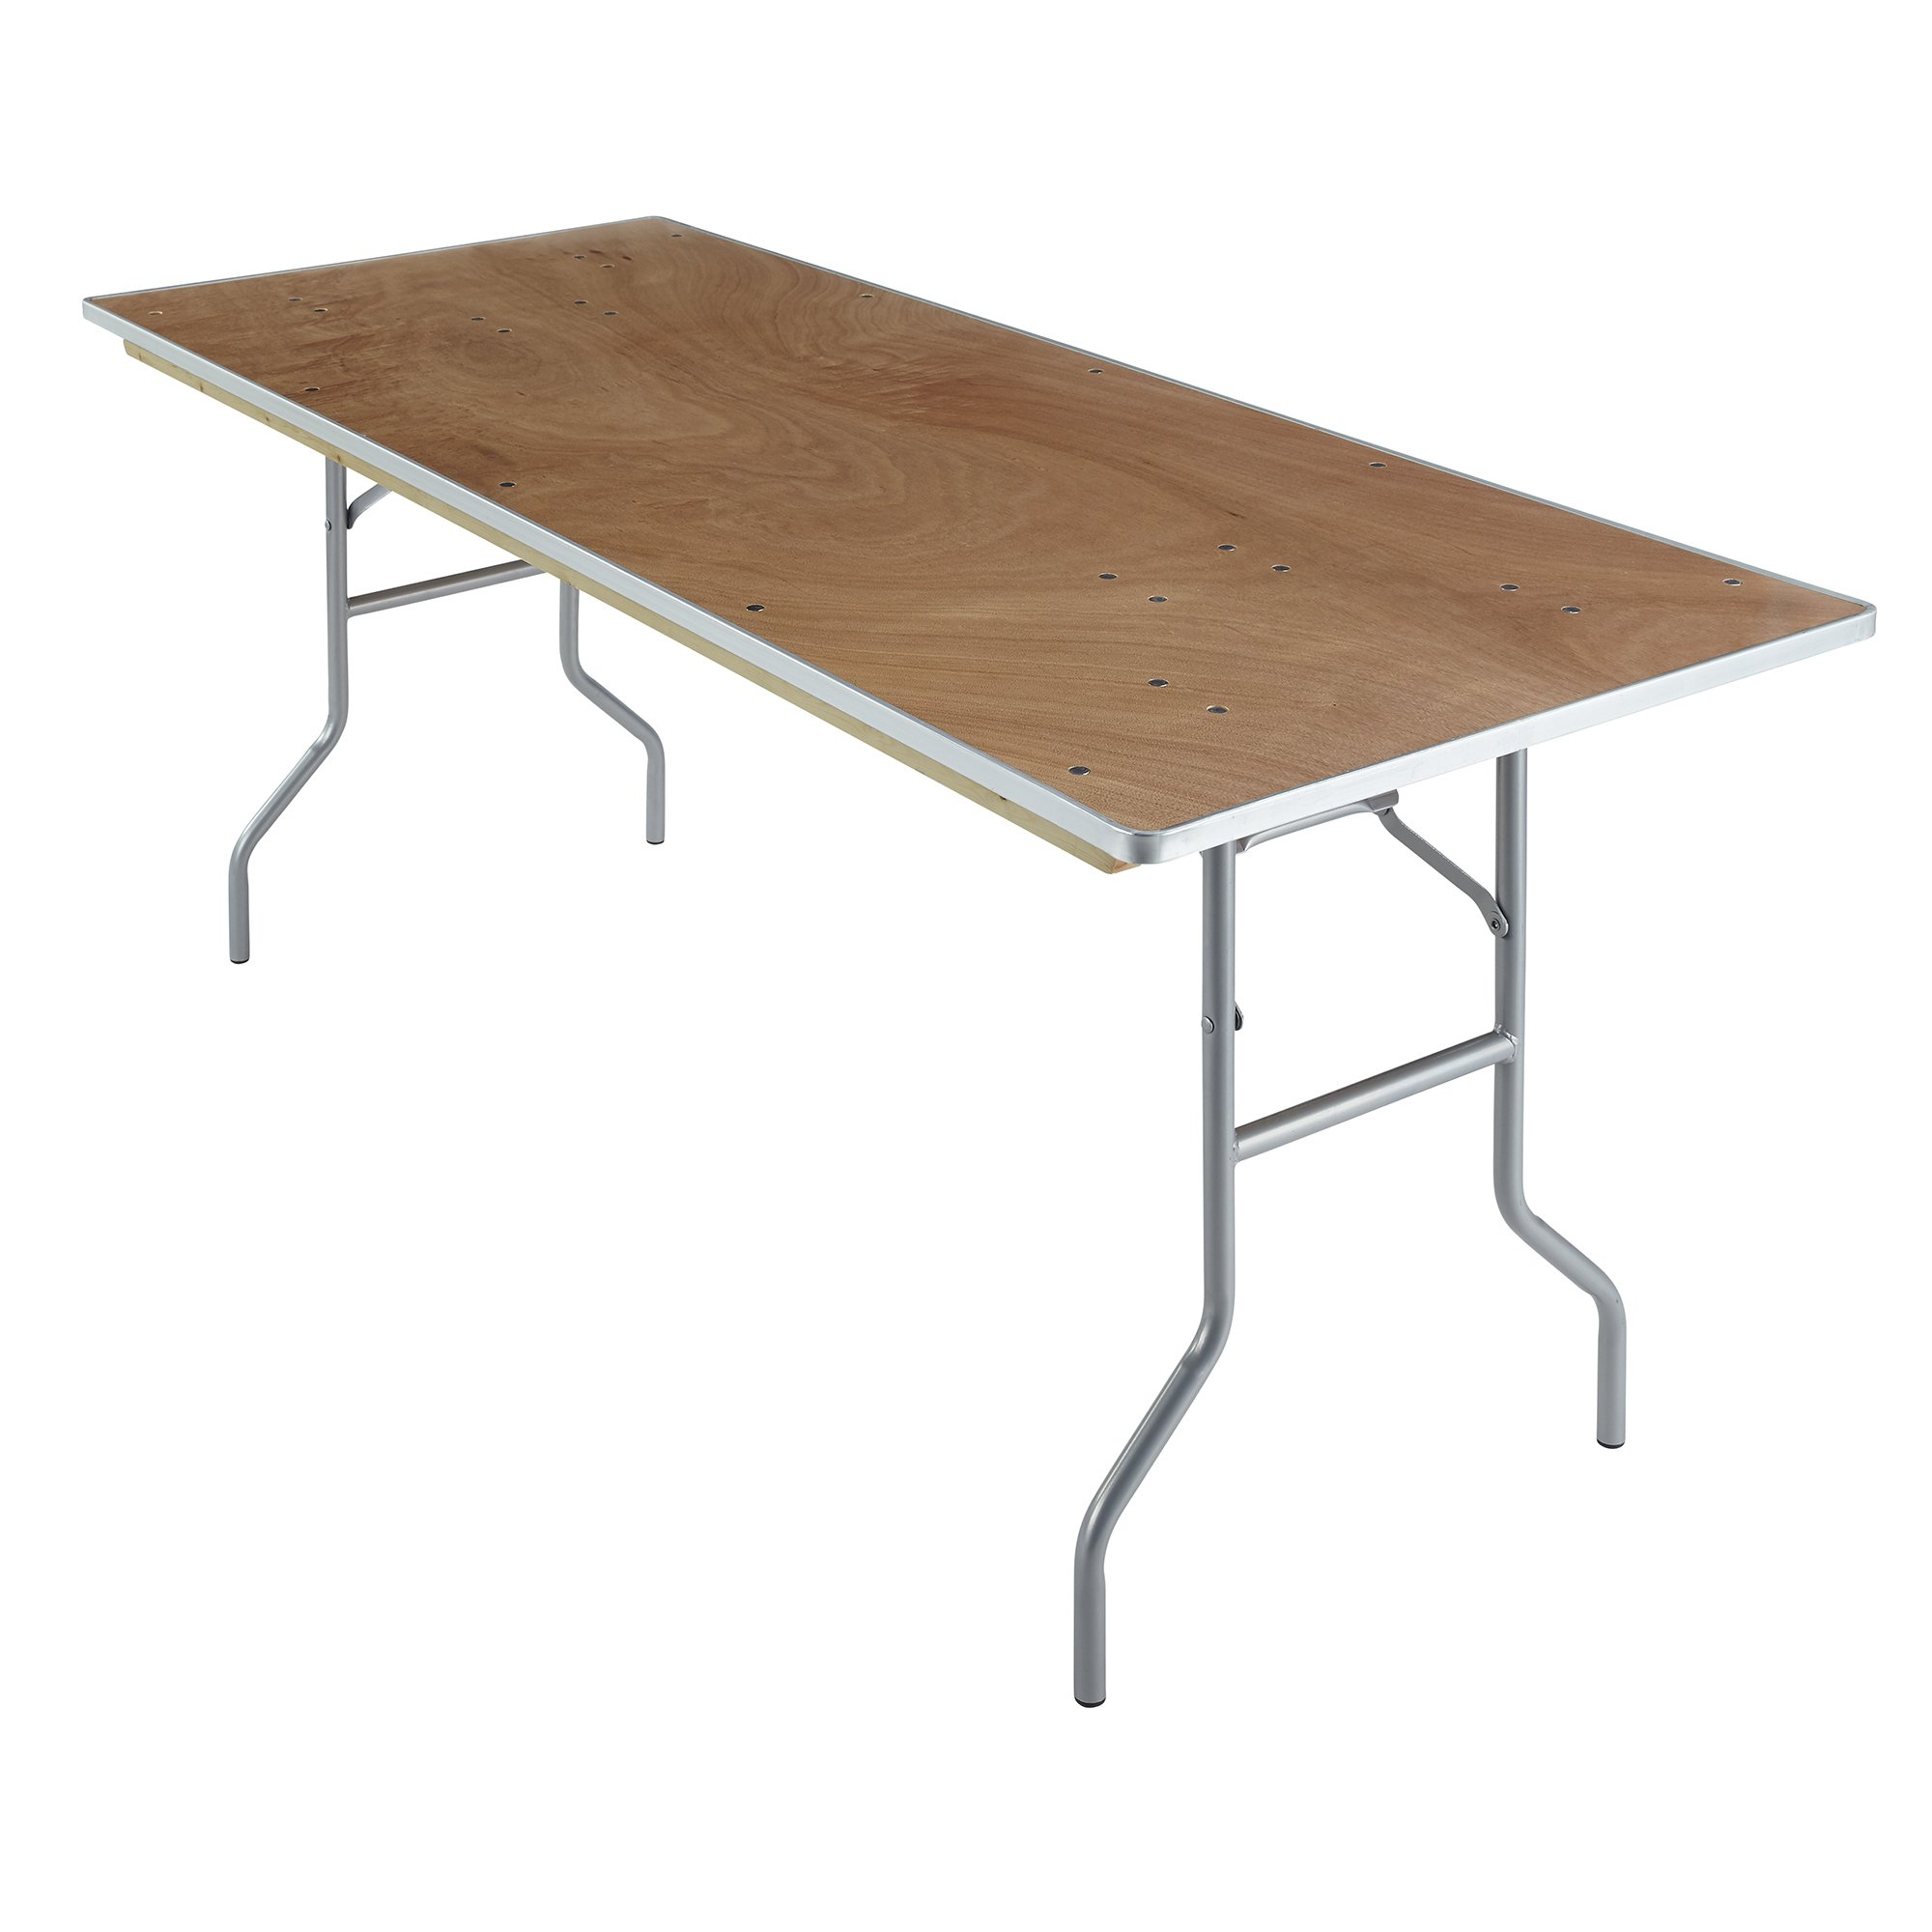 Iceberg 56220 Banquet Plywood Folding Table, Natural, 30 x 72 Inches